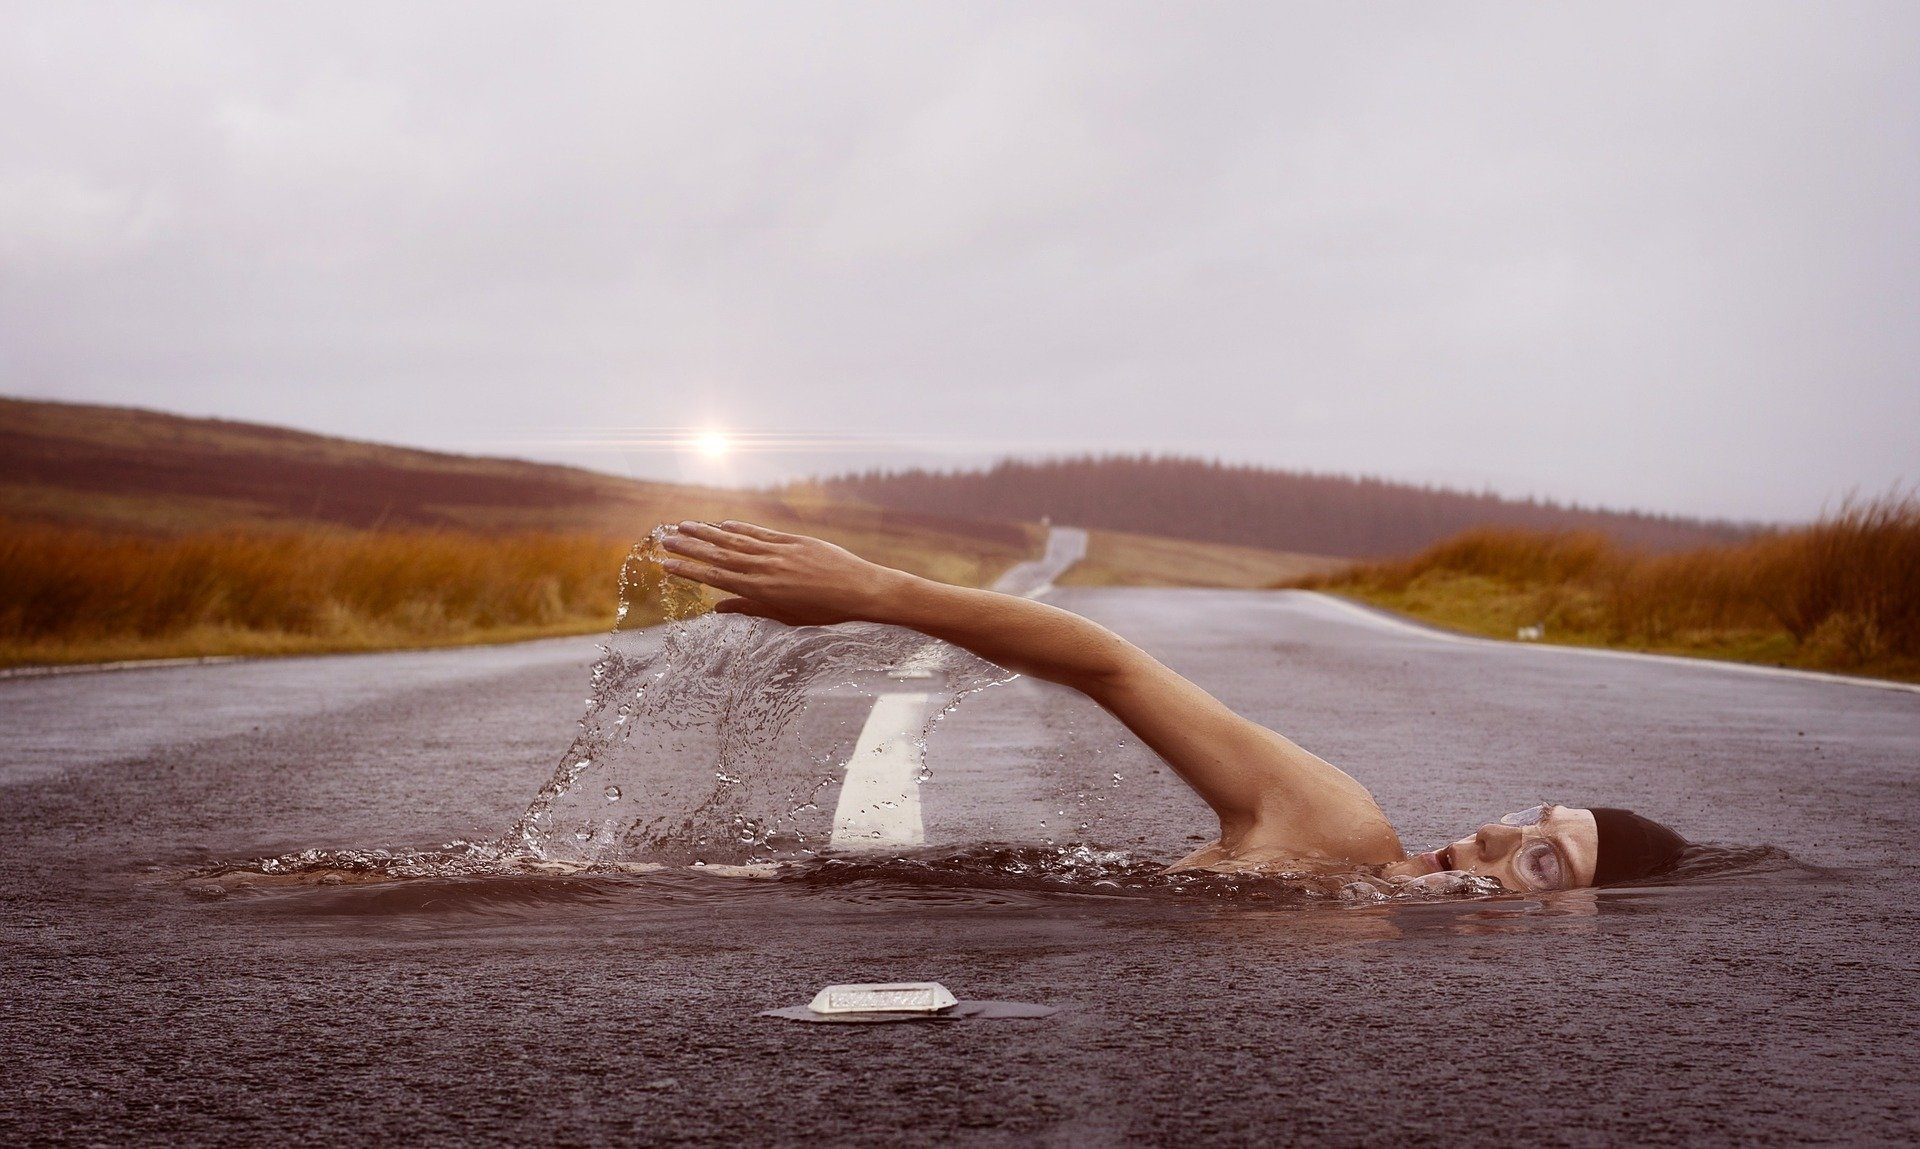 swimmer in highway